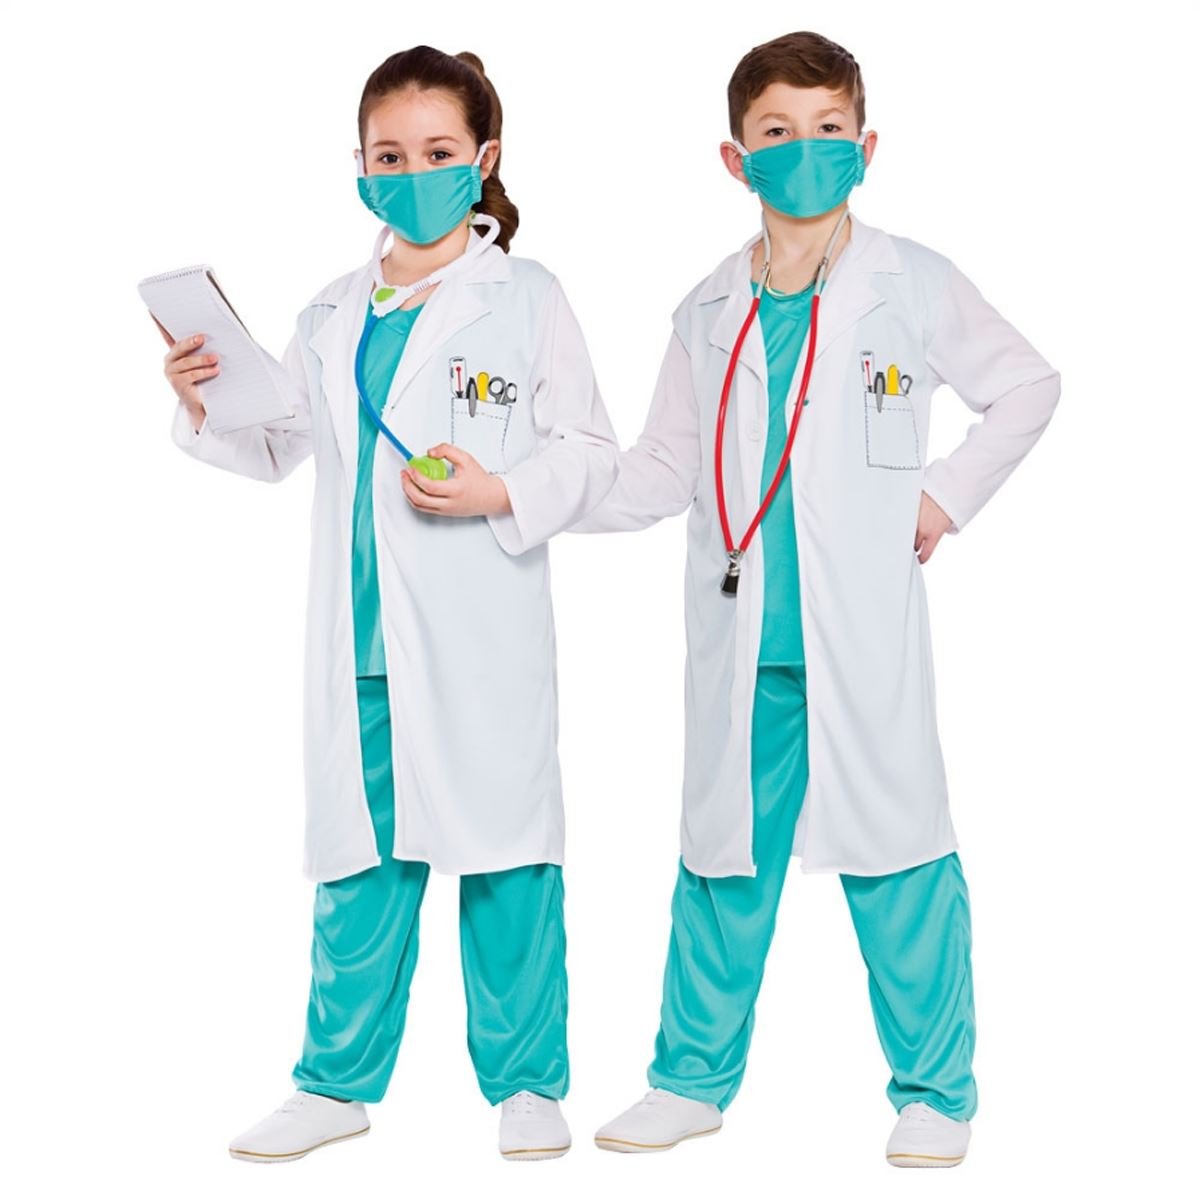 Child-Hospital-Doctor-Nurse-Surgeon-Scrubs-Fancy-Dress-  sc 1 st  eBay & Child Hospital Doctor Nurse Surgeon Scrubs Fancy Dress Costume Boys ...